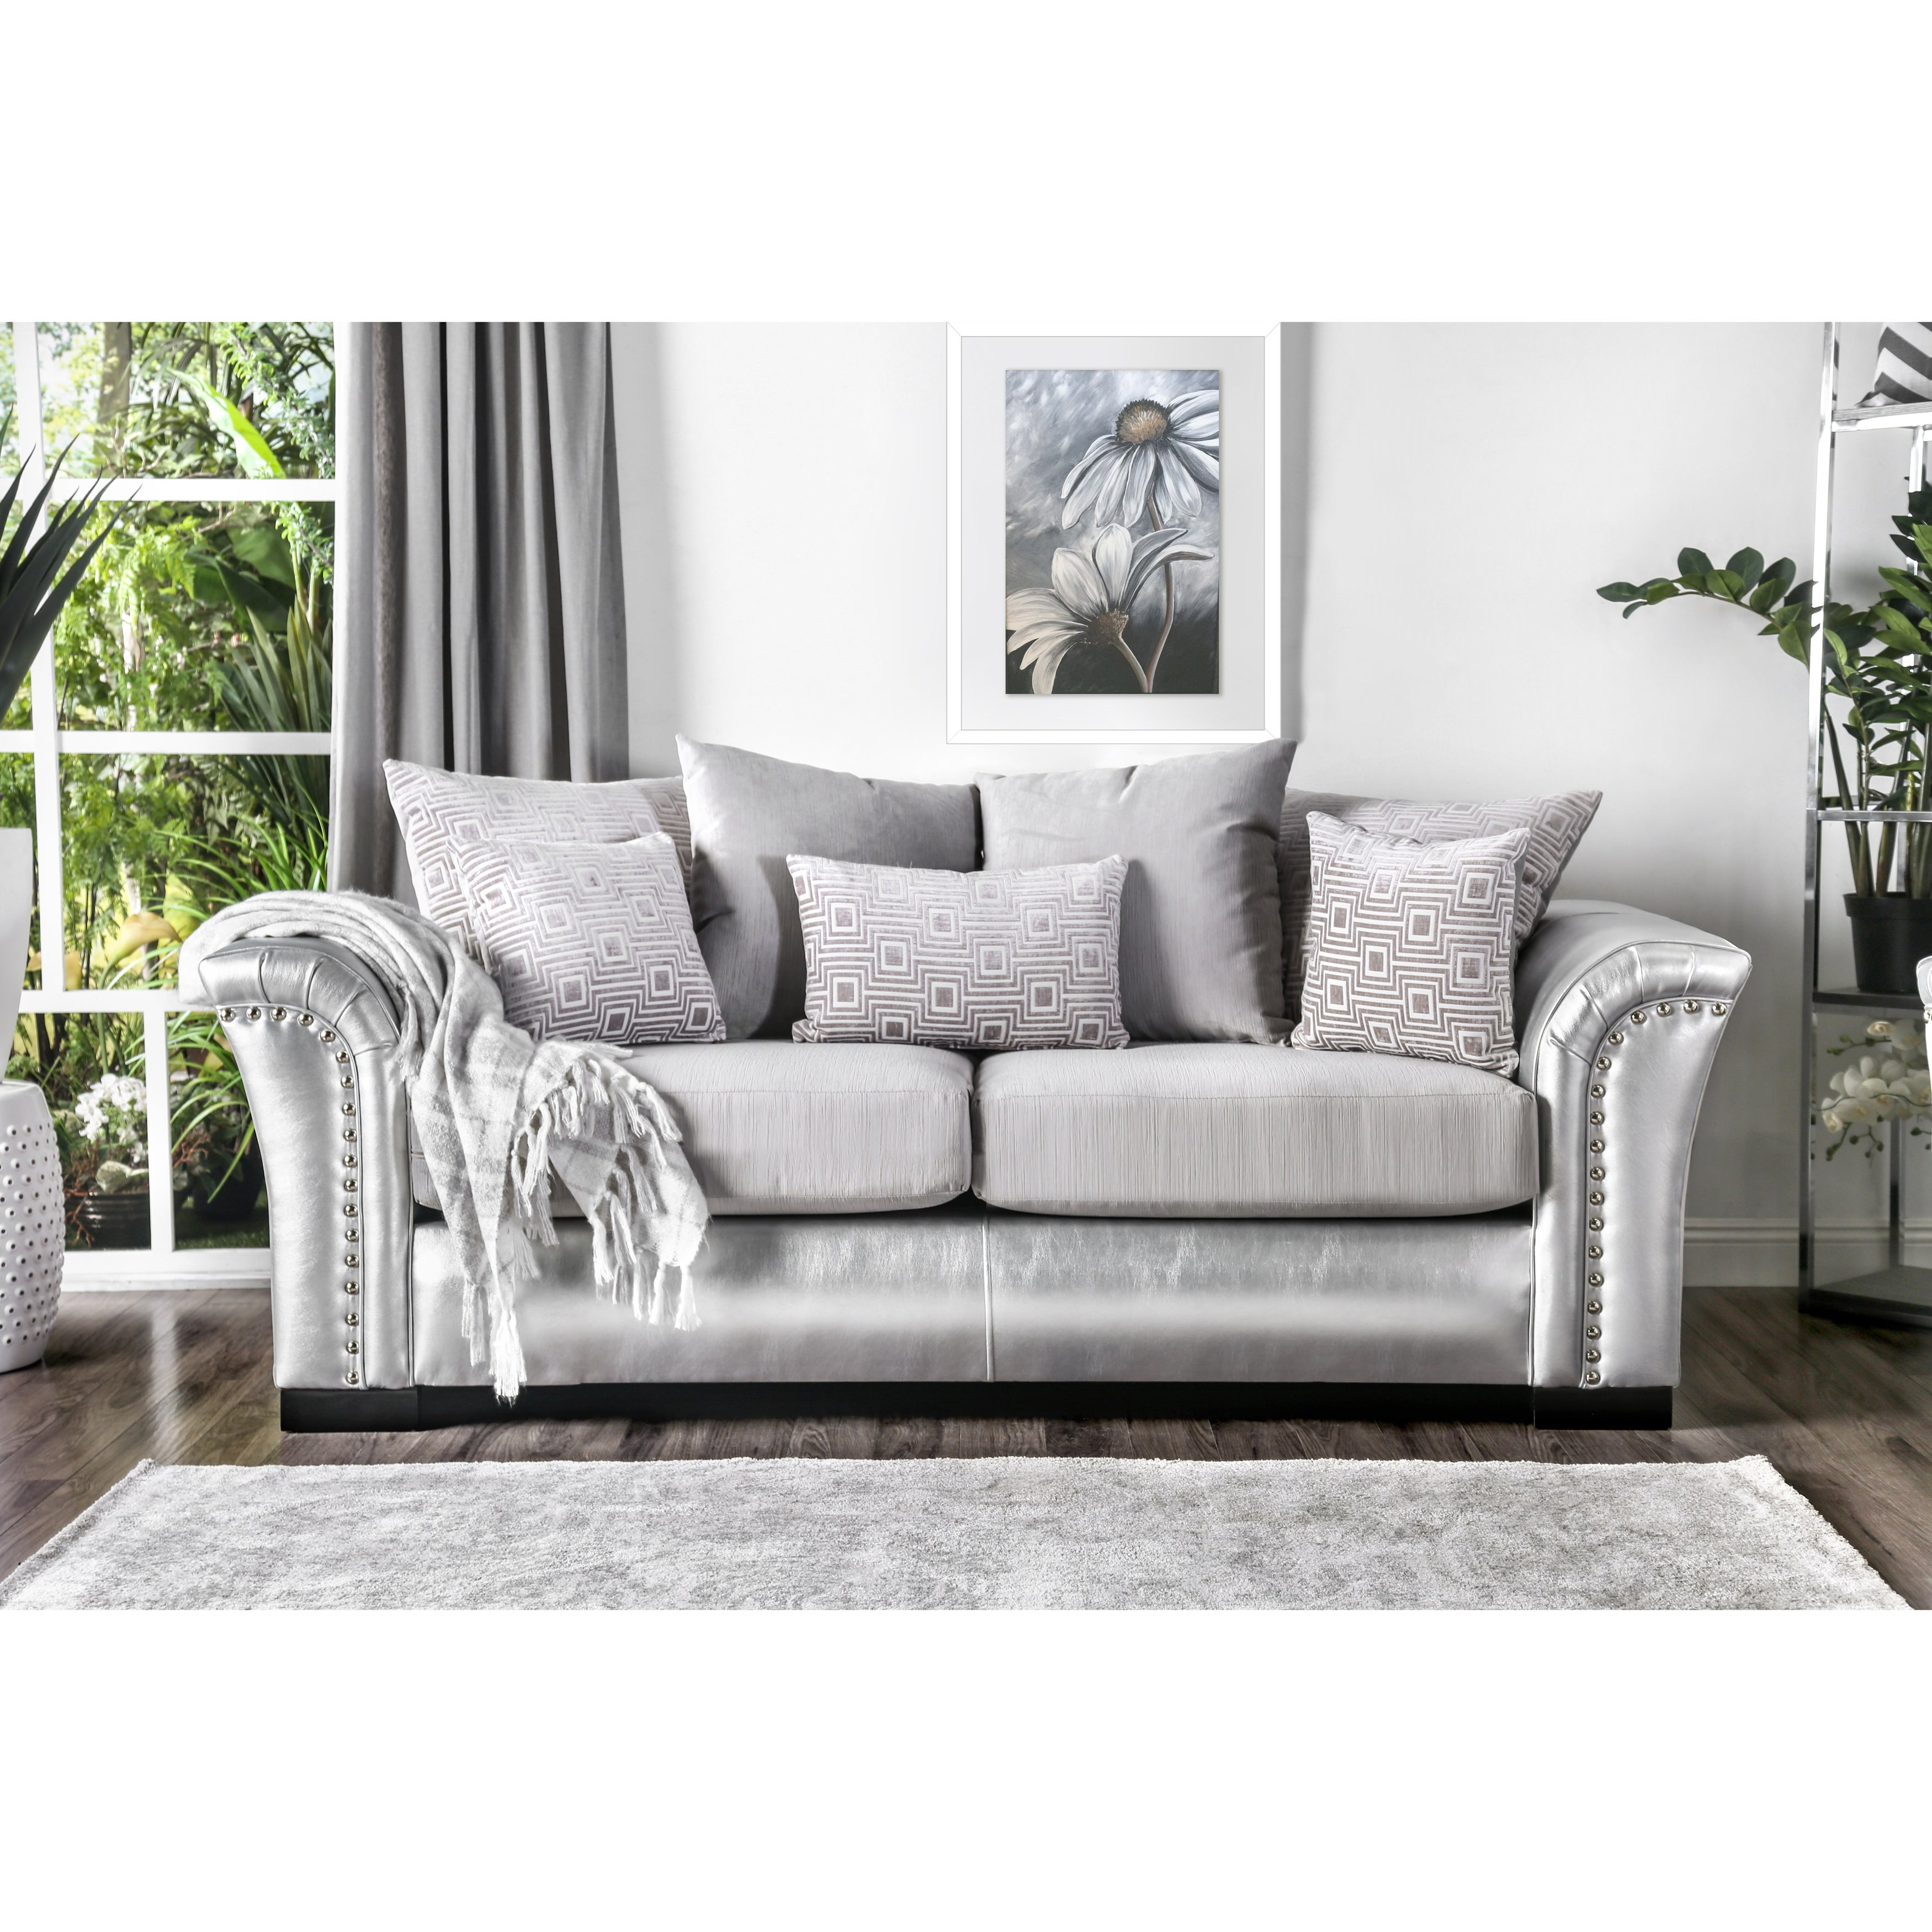 Shop Furniture Of America Linwood Classic Contemporary Two Tone Sofa   Free  Shipping Today   Overstock.com   17351248